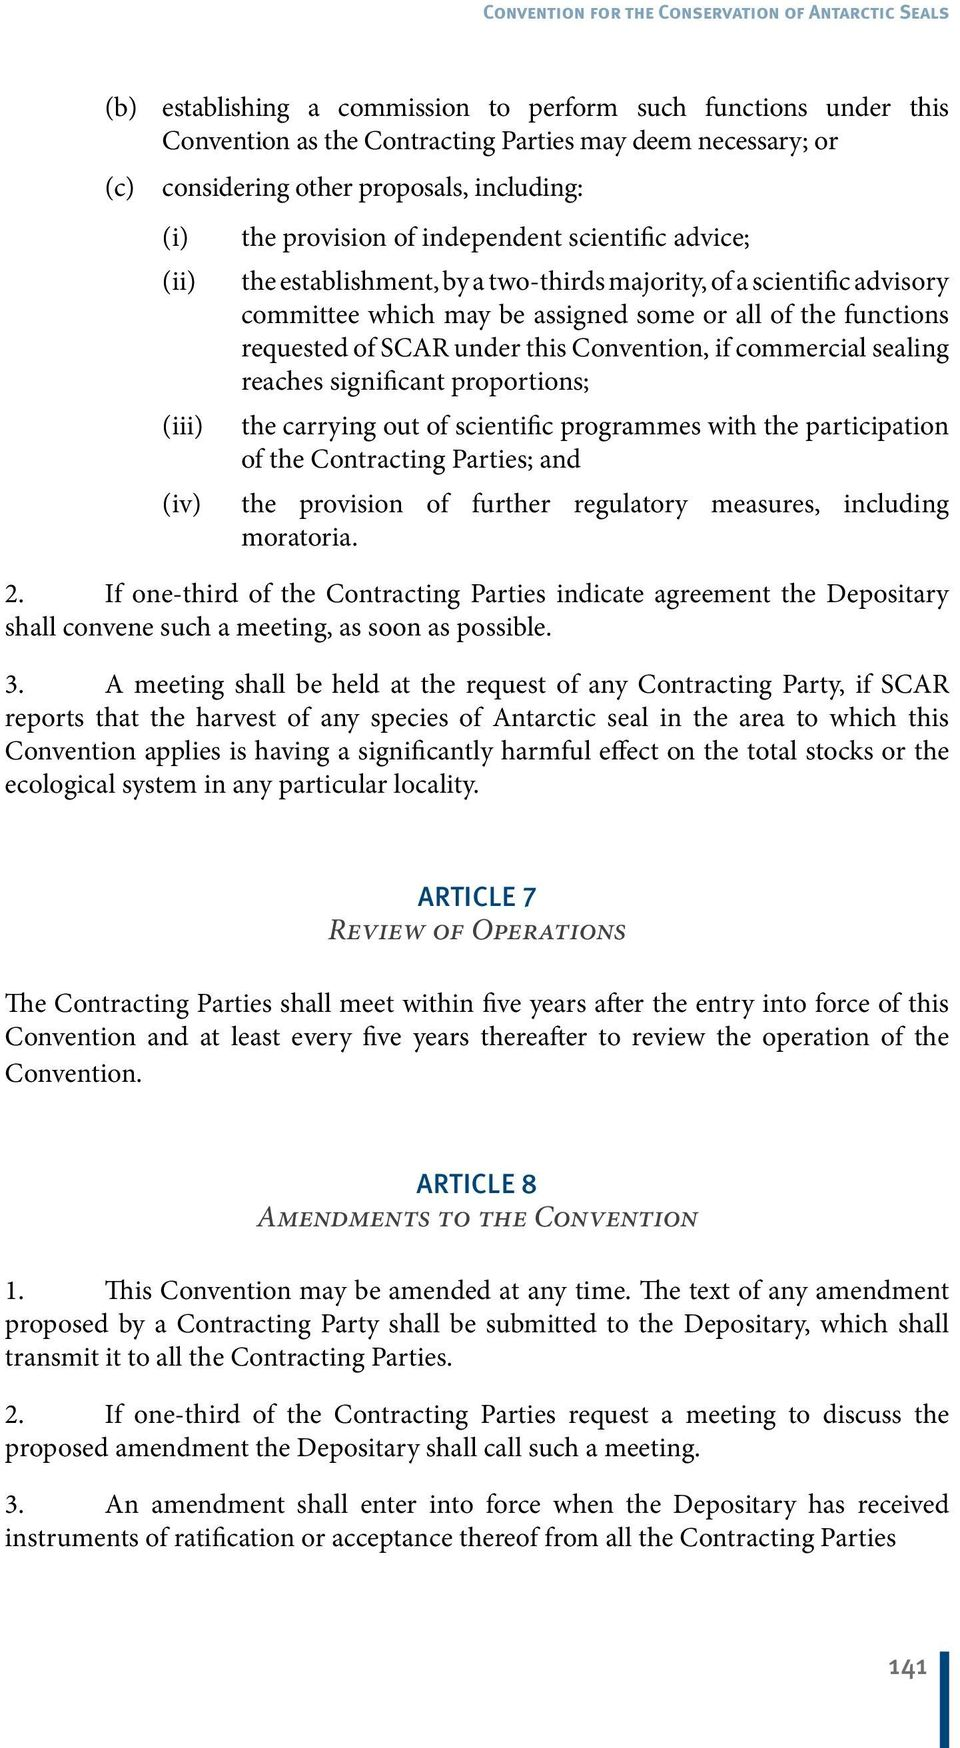 Convention, if commercial sealing reaches significant proportions; (iii) the carrying out of scientific programmes with the participation of the Contracting Parties; and (iv) the provision of further